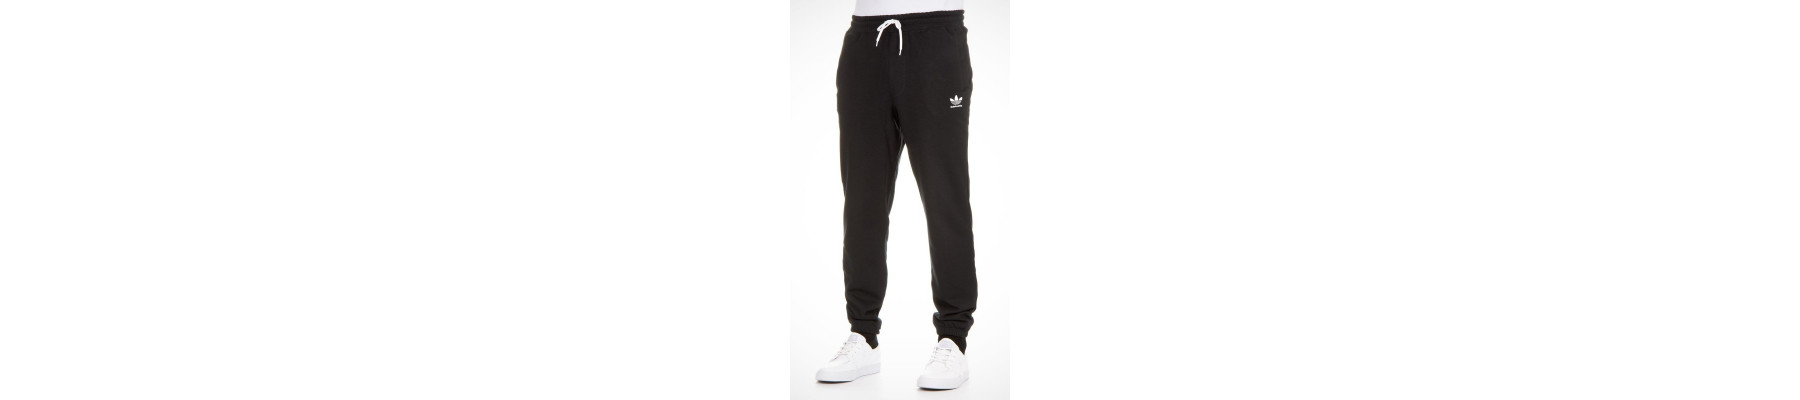 Adidas Skateboarding ADV Sweatpants Black